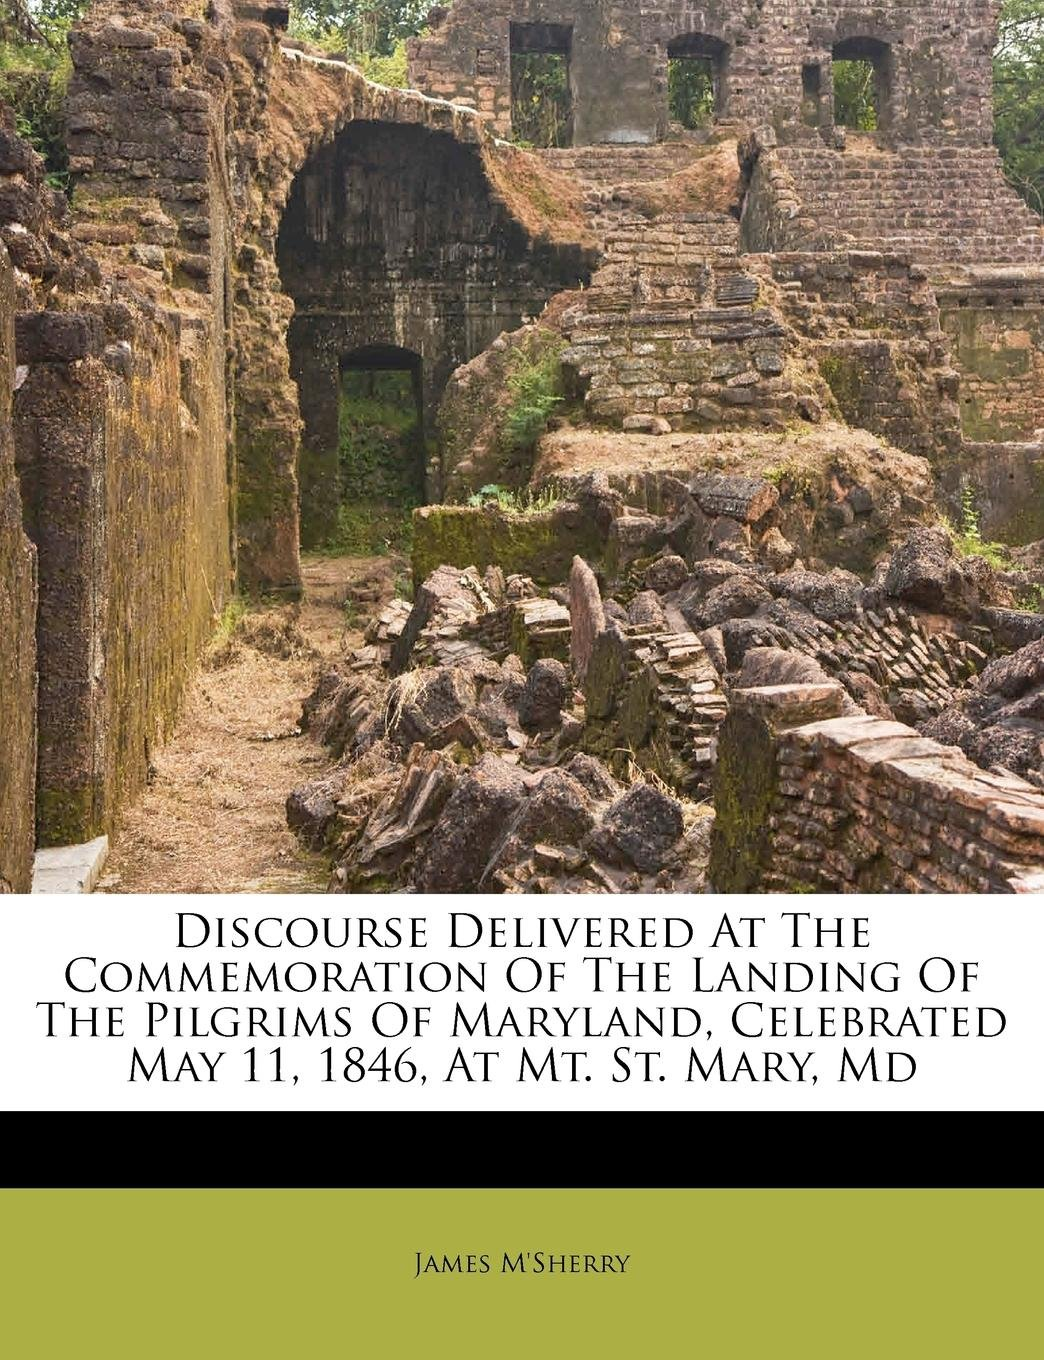 Download Discourse Delivered At The Commemoration Of The Landing Of The Pilgrims Of Maryland, Celebrated May 11, 1846, At Mt. St. Mary, Md ebook